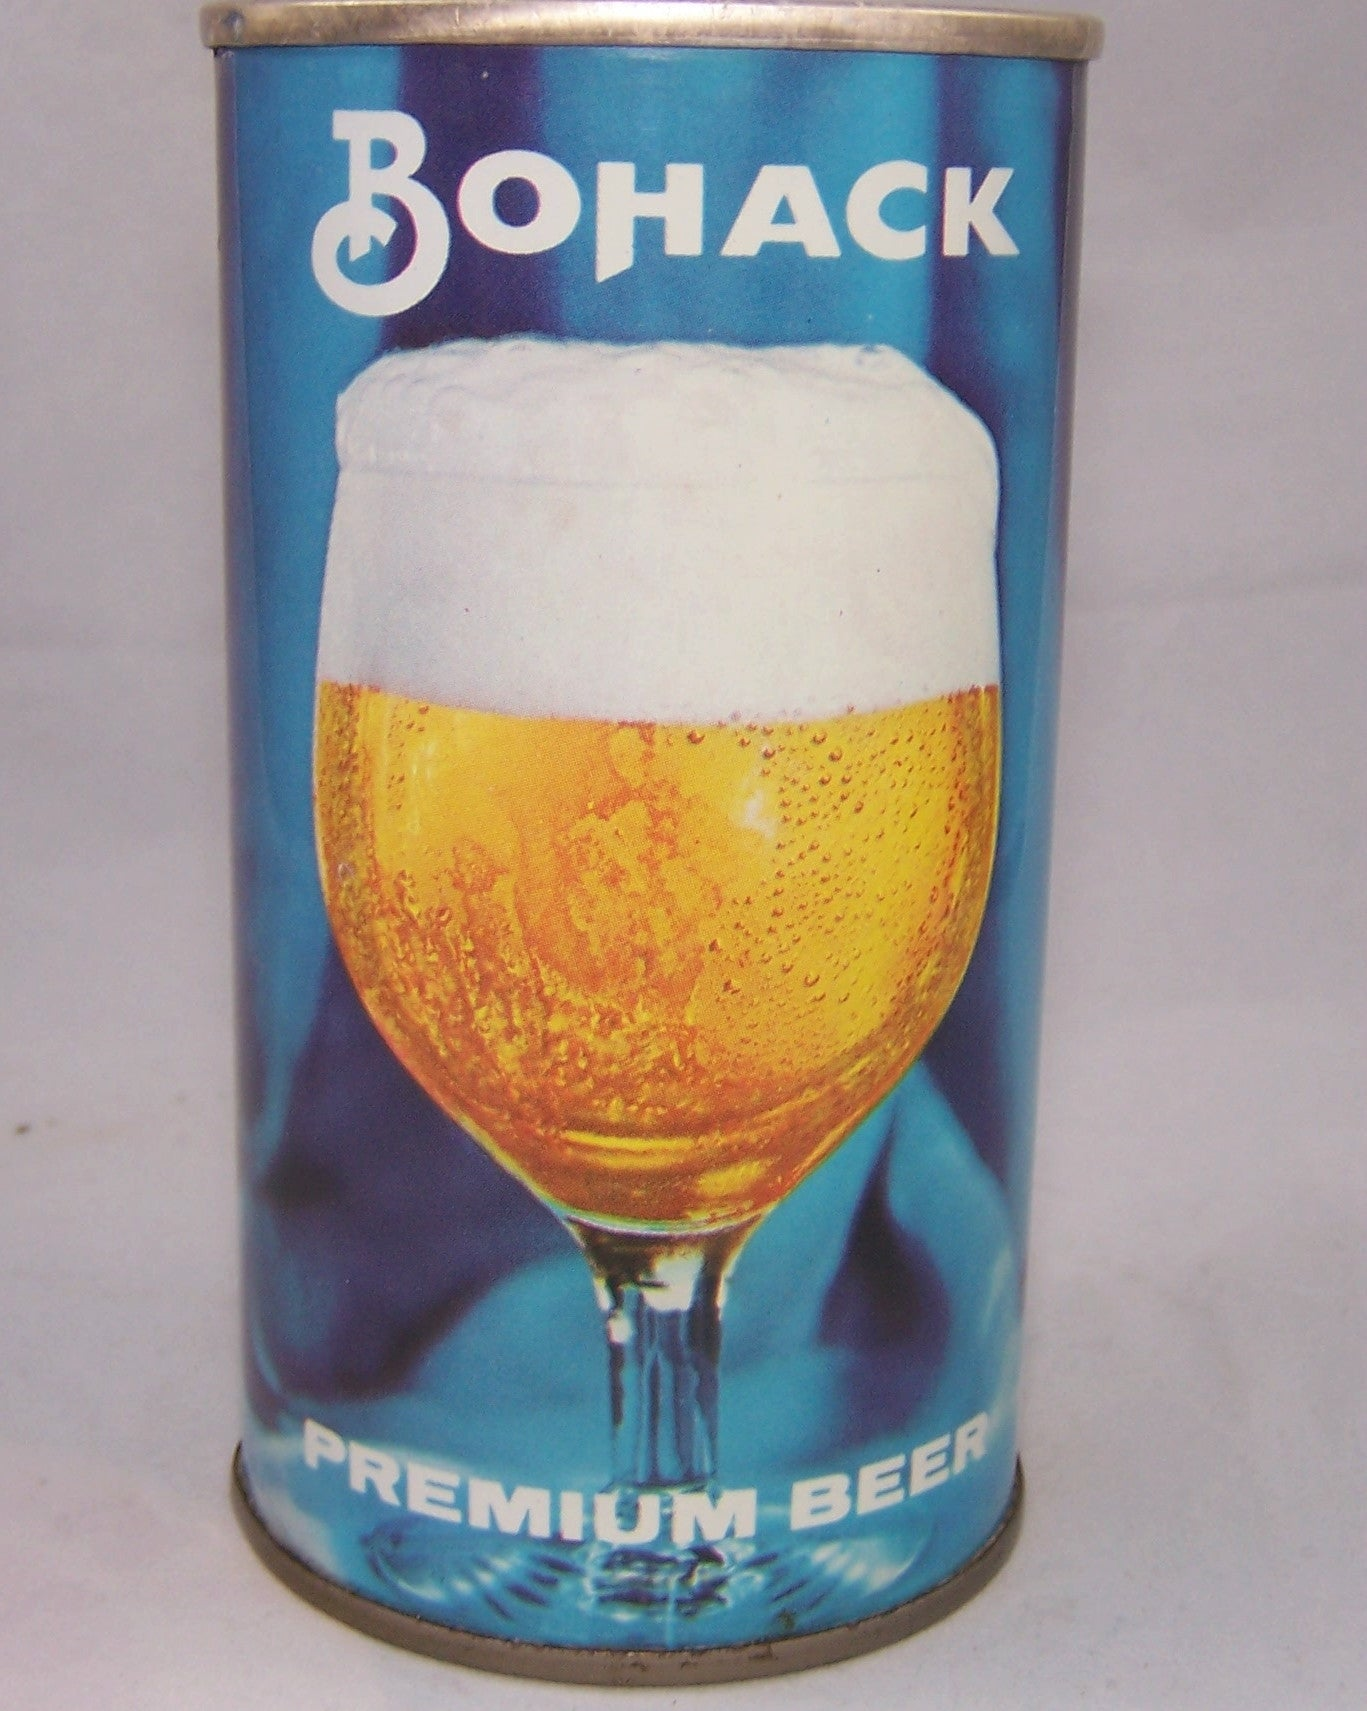 Bohack Premium Beer, USBC II 44-12, Grade 1/1+ Sold on 08/07/17